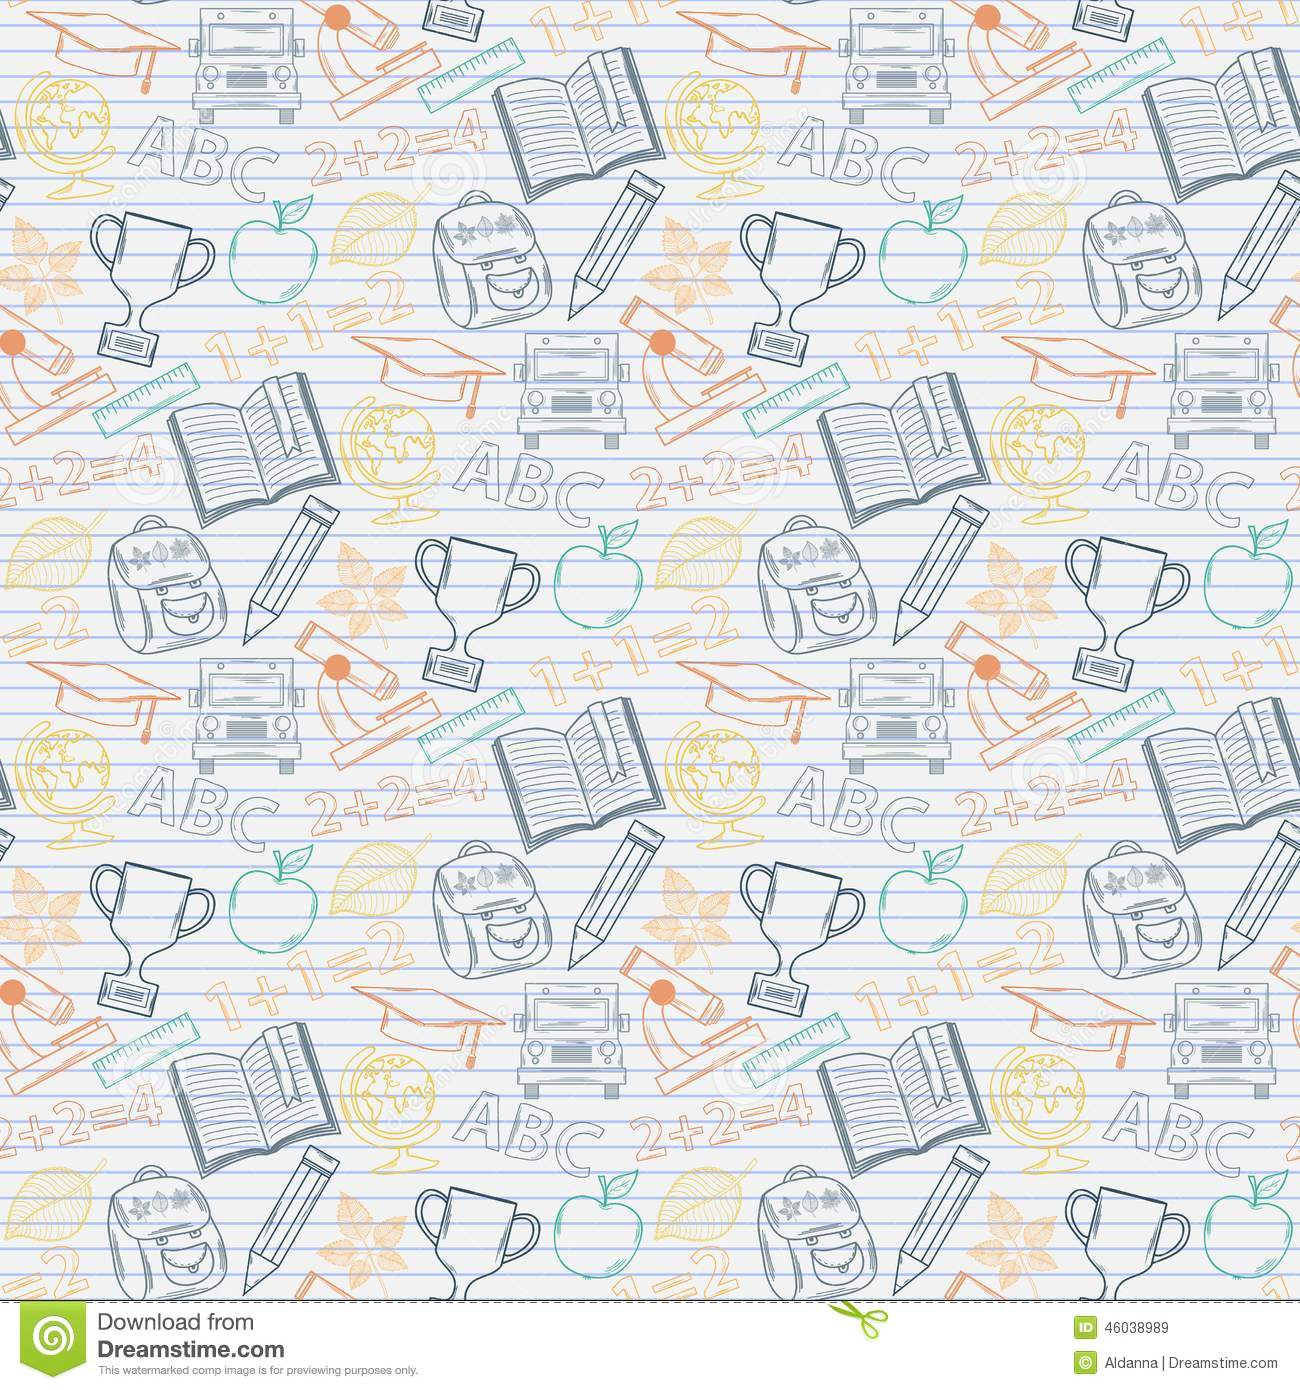 Back To School Icons Education Seamless Pattern. Cartoon